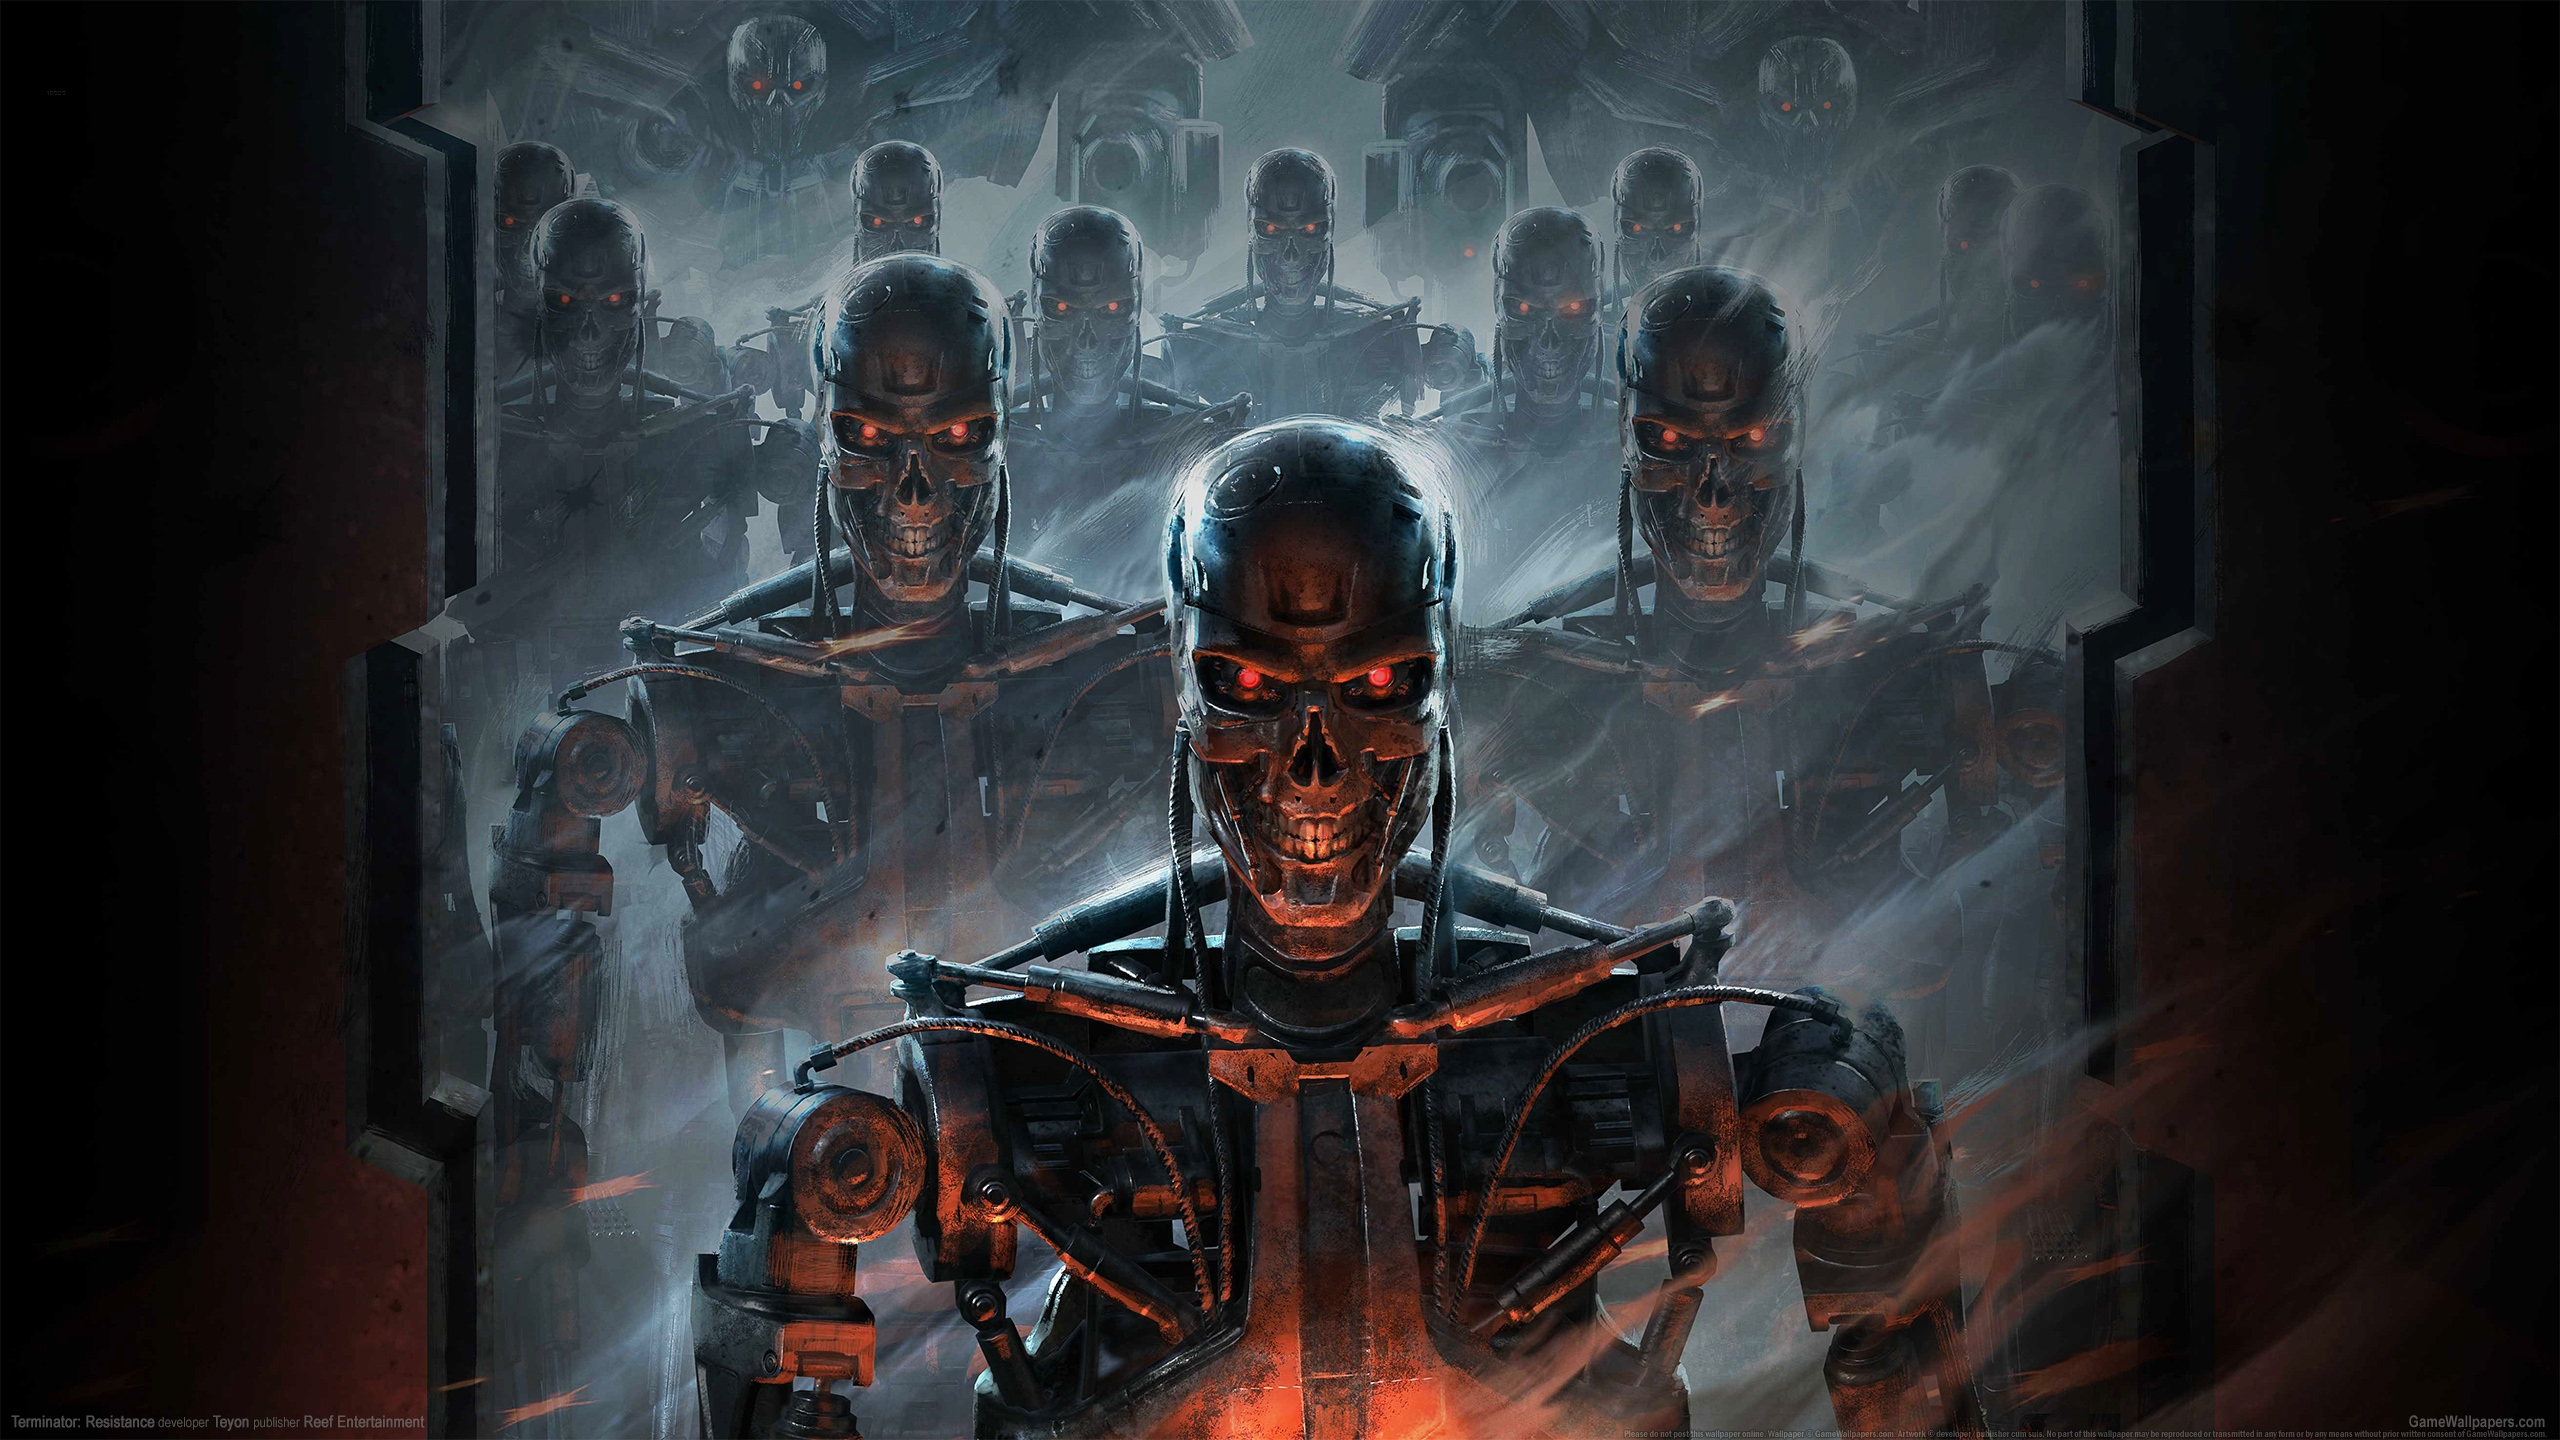 Terminator: Resistance 2560x1440 wallpaper or background 01